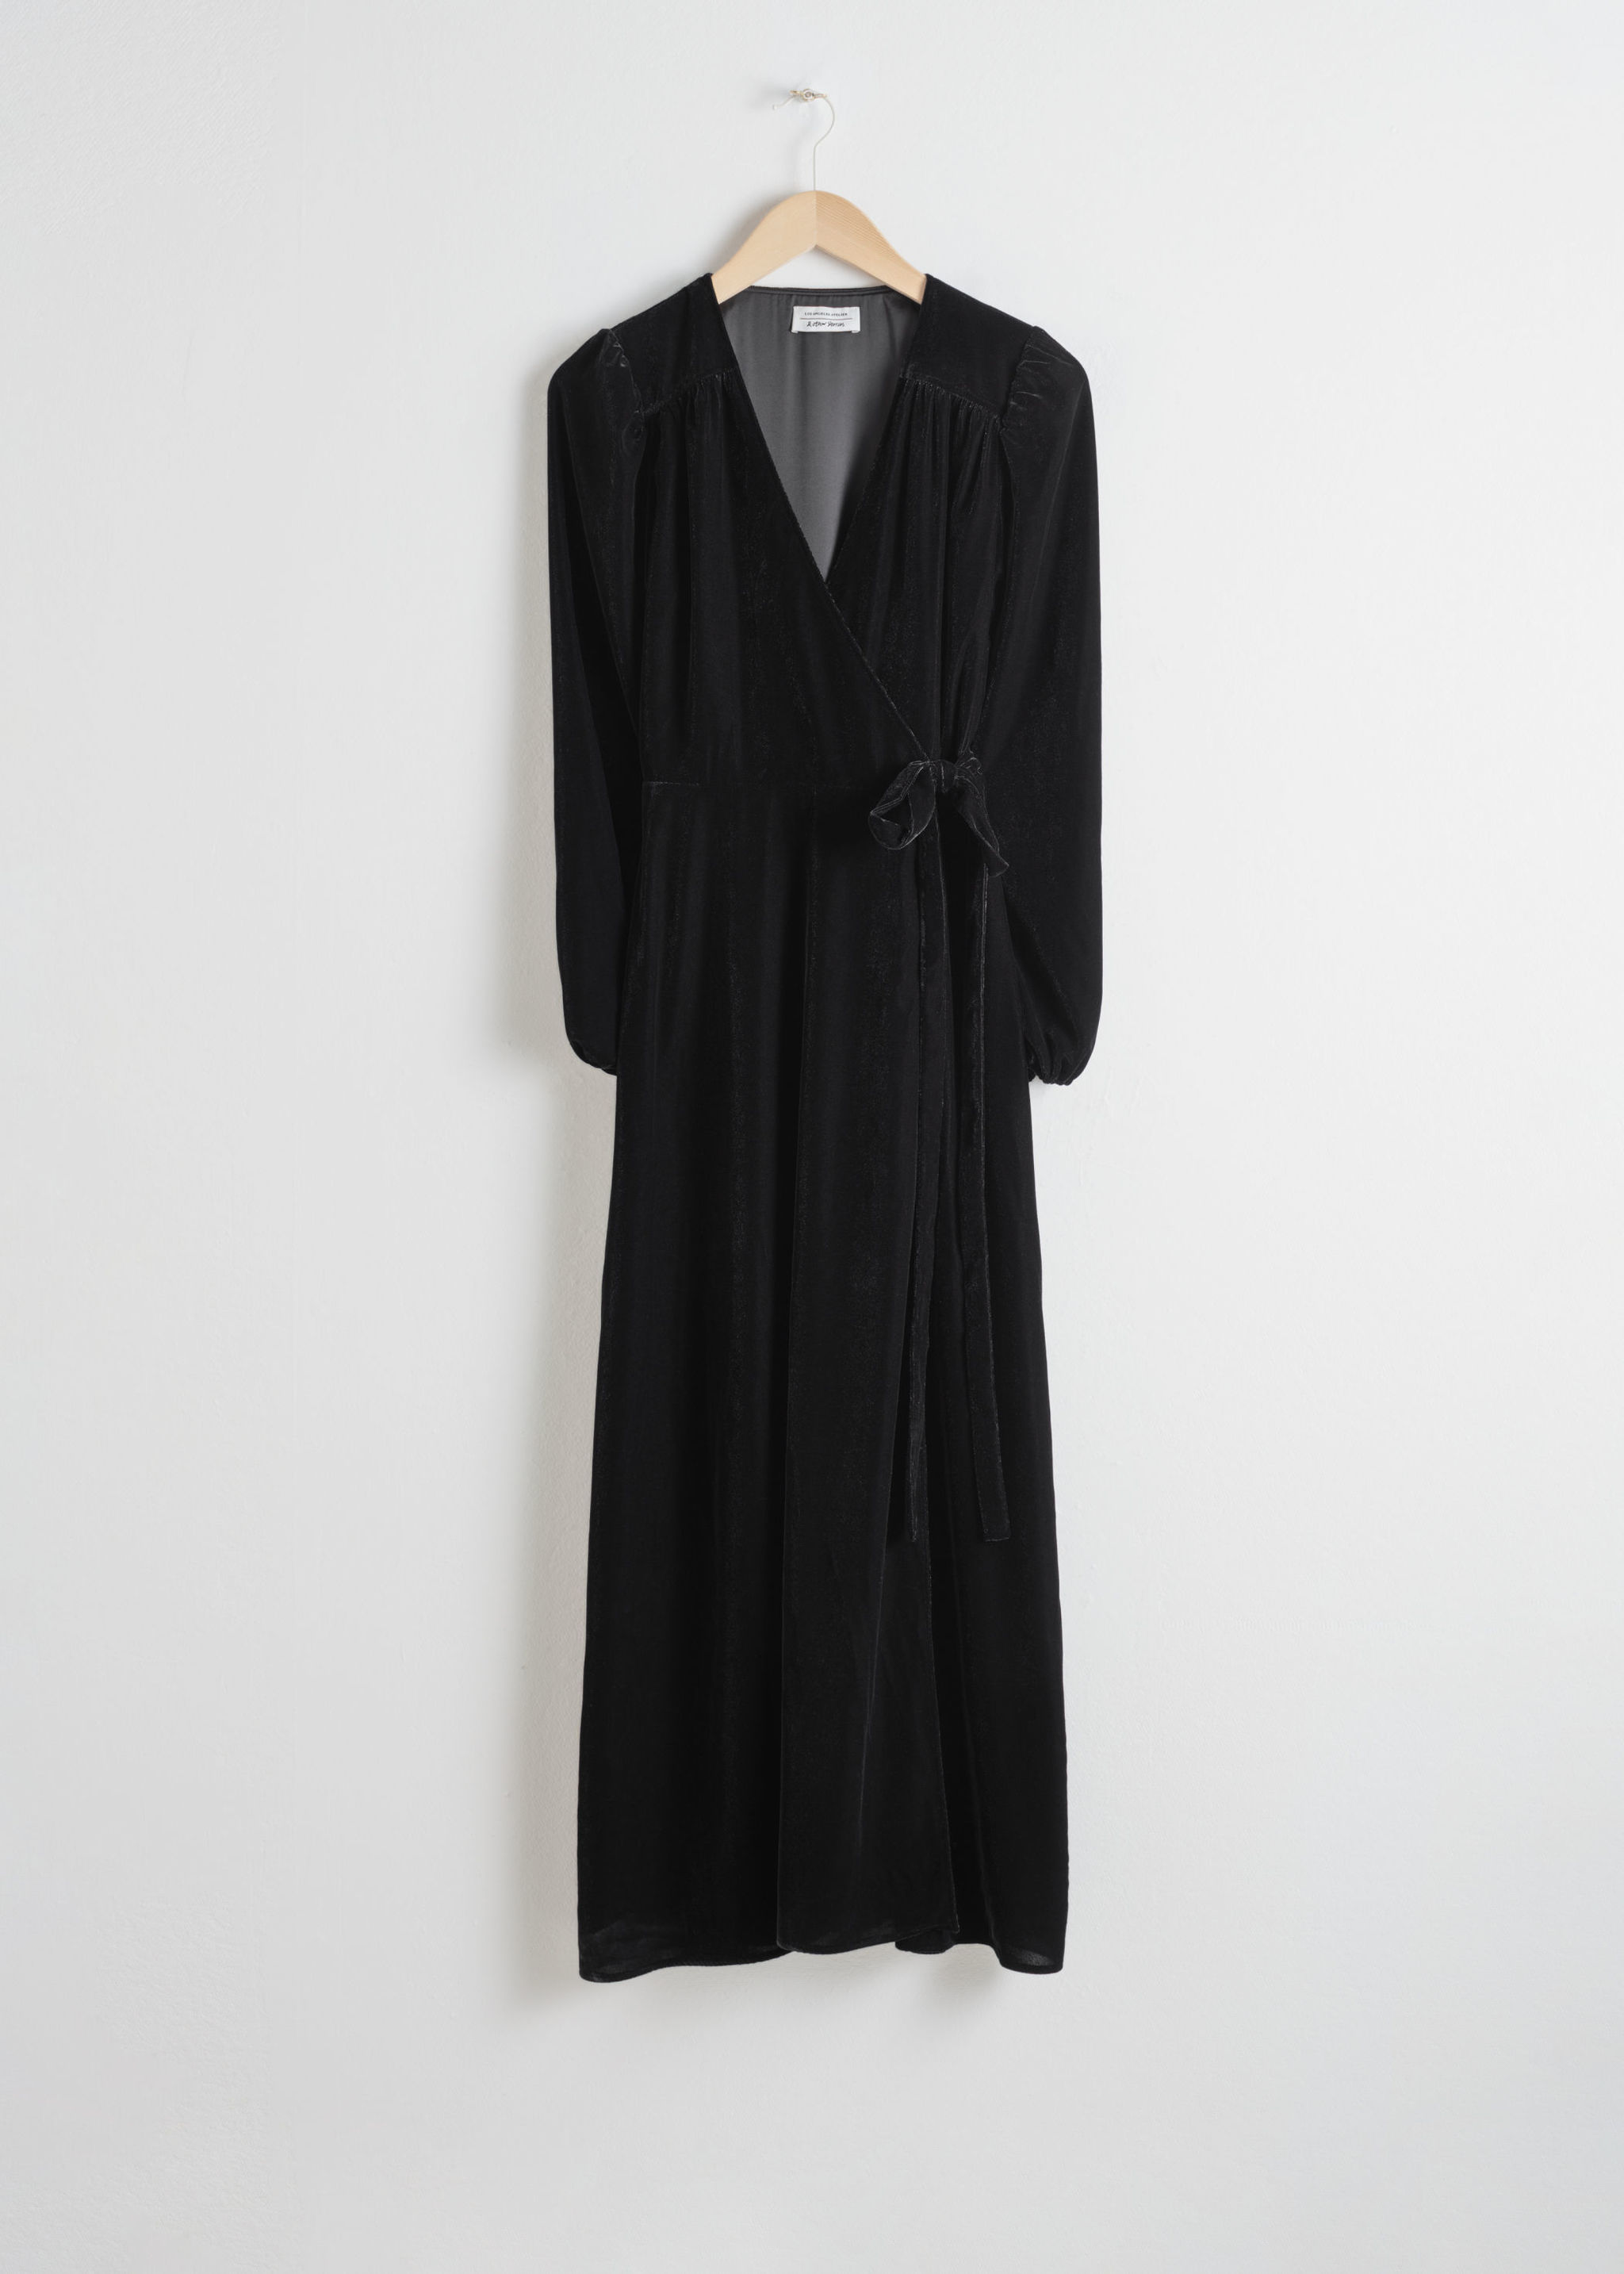 Vestido negro de & Other Stories (99 euros).